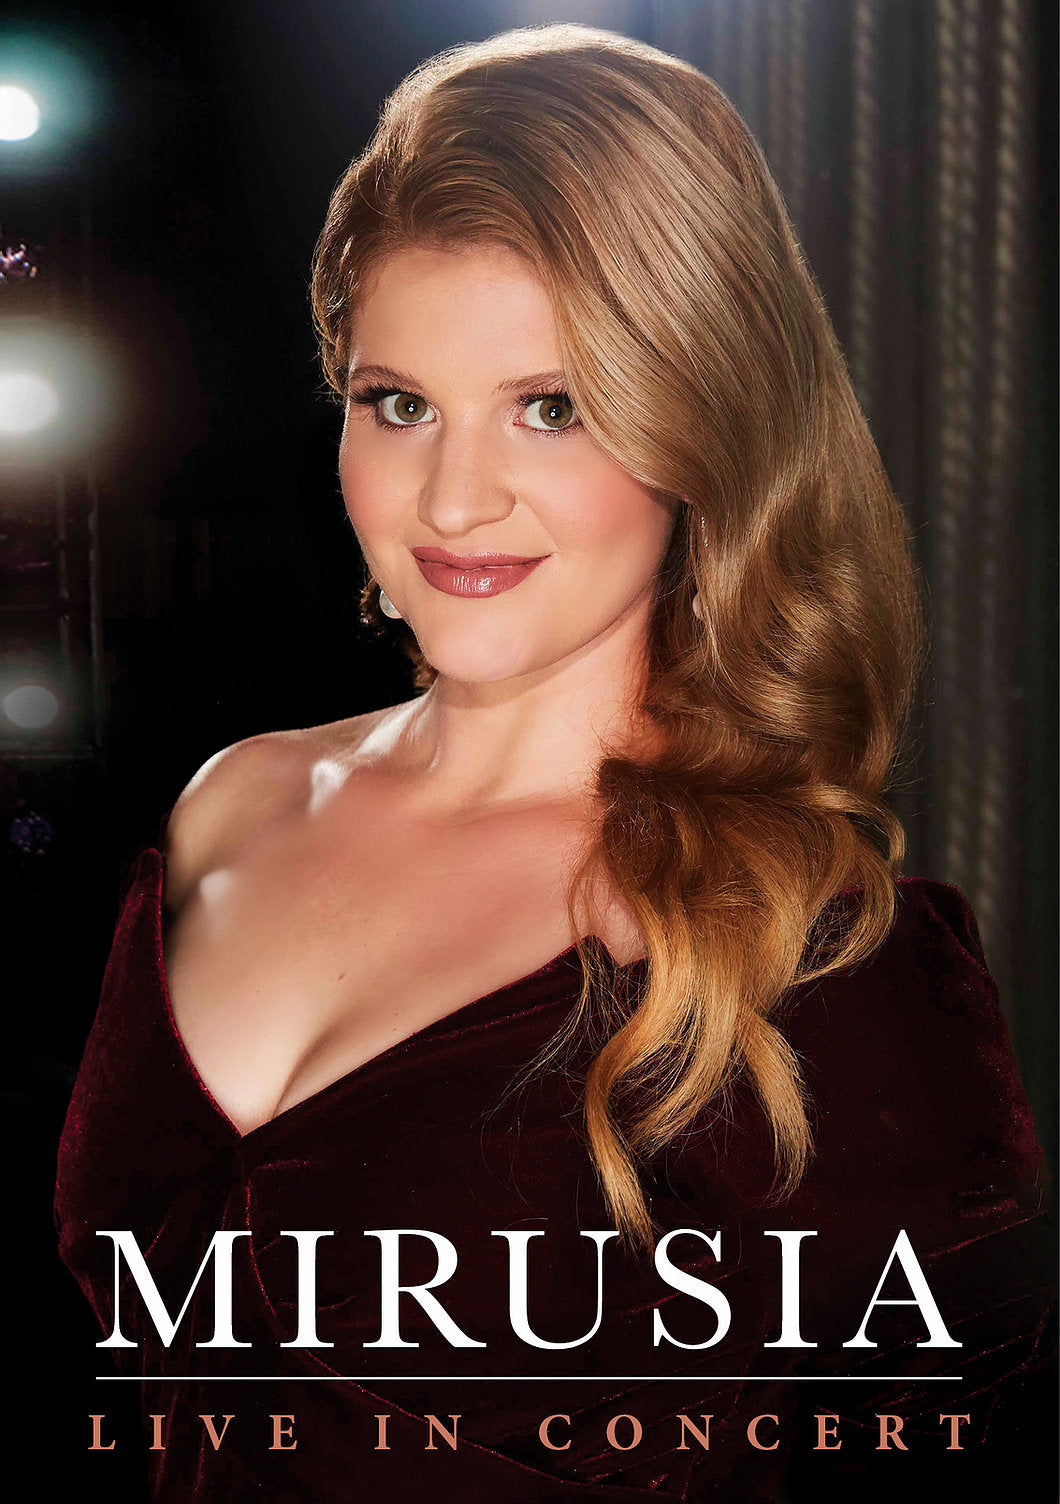 MIRUSIA - Live In Concert (SIGNED DVD) RELEASED 4 JUNE 2021